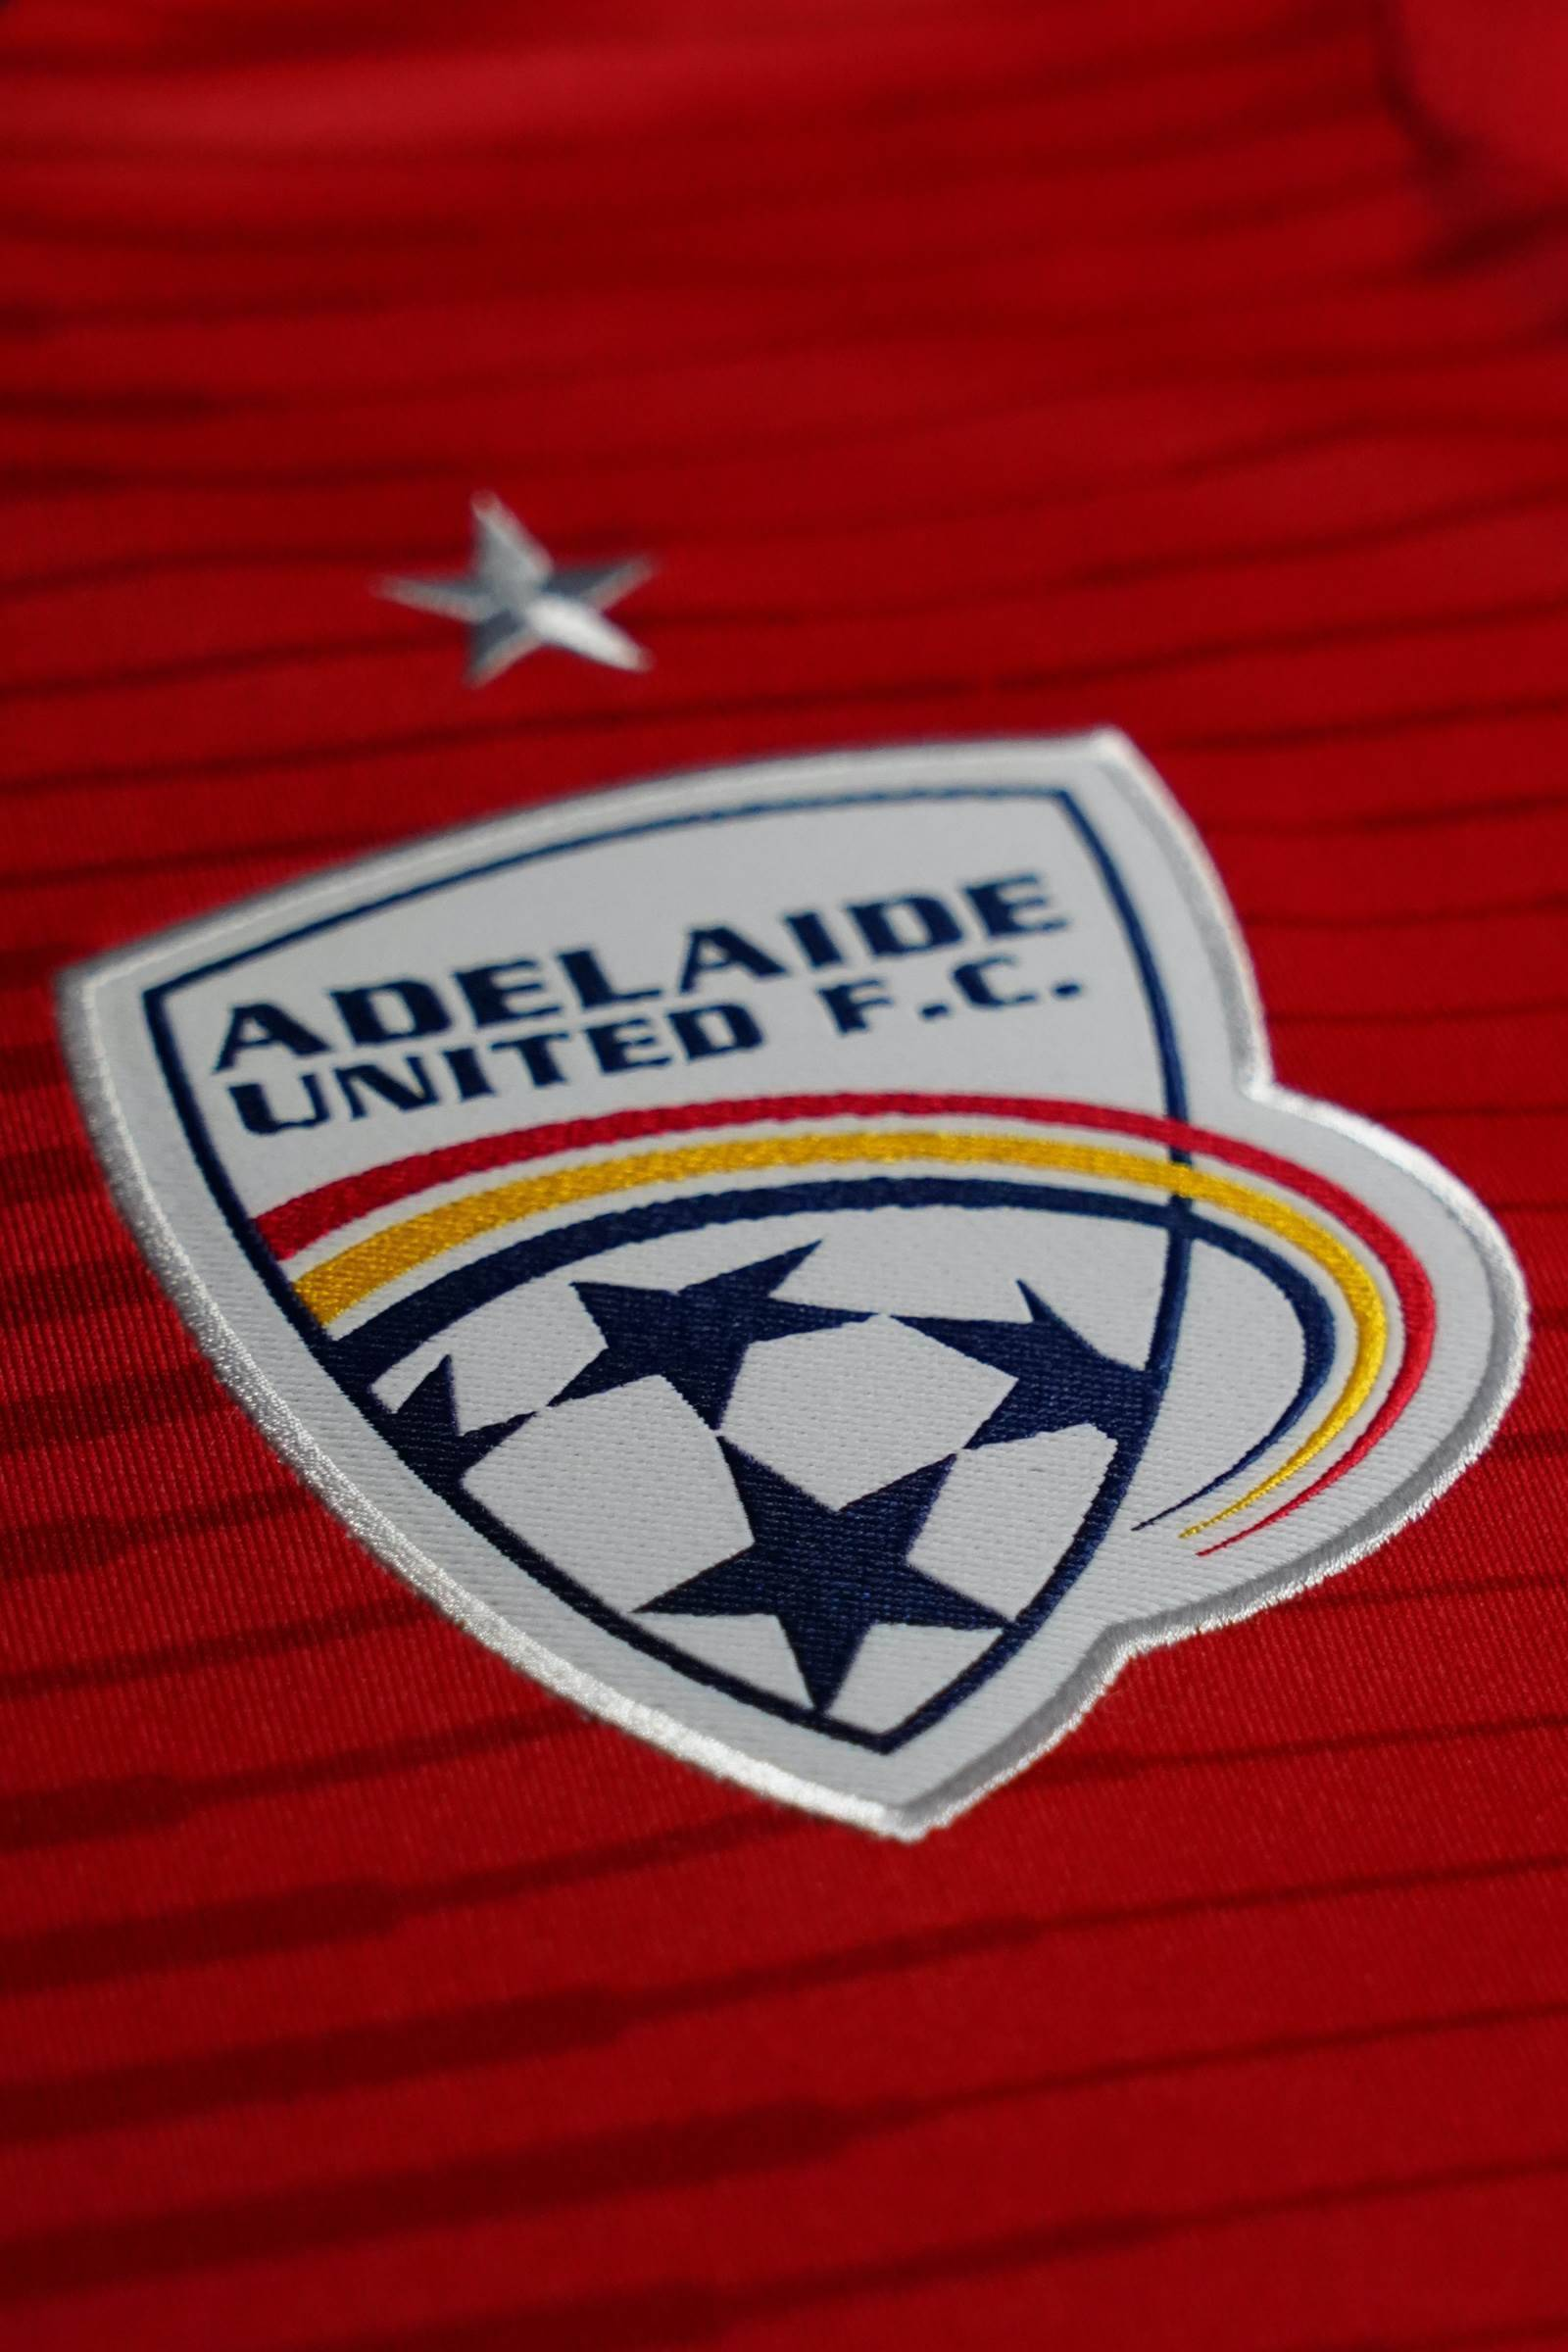 In pics: Adelaide United reveal new kit